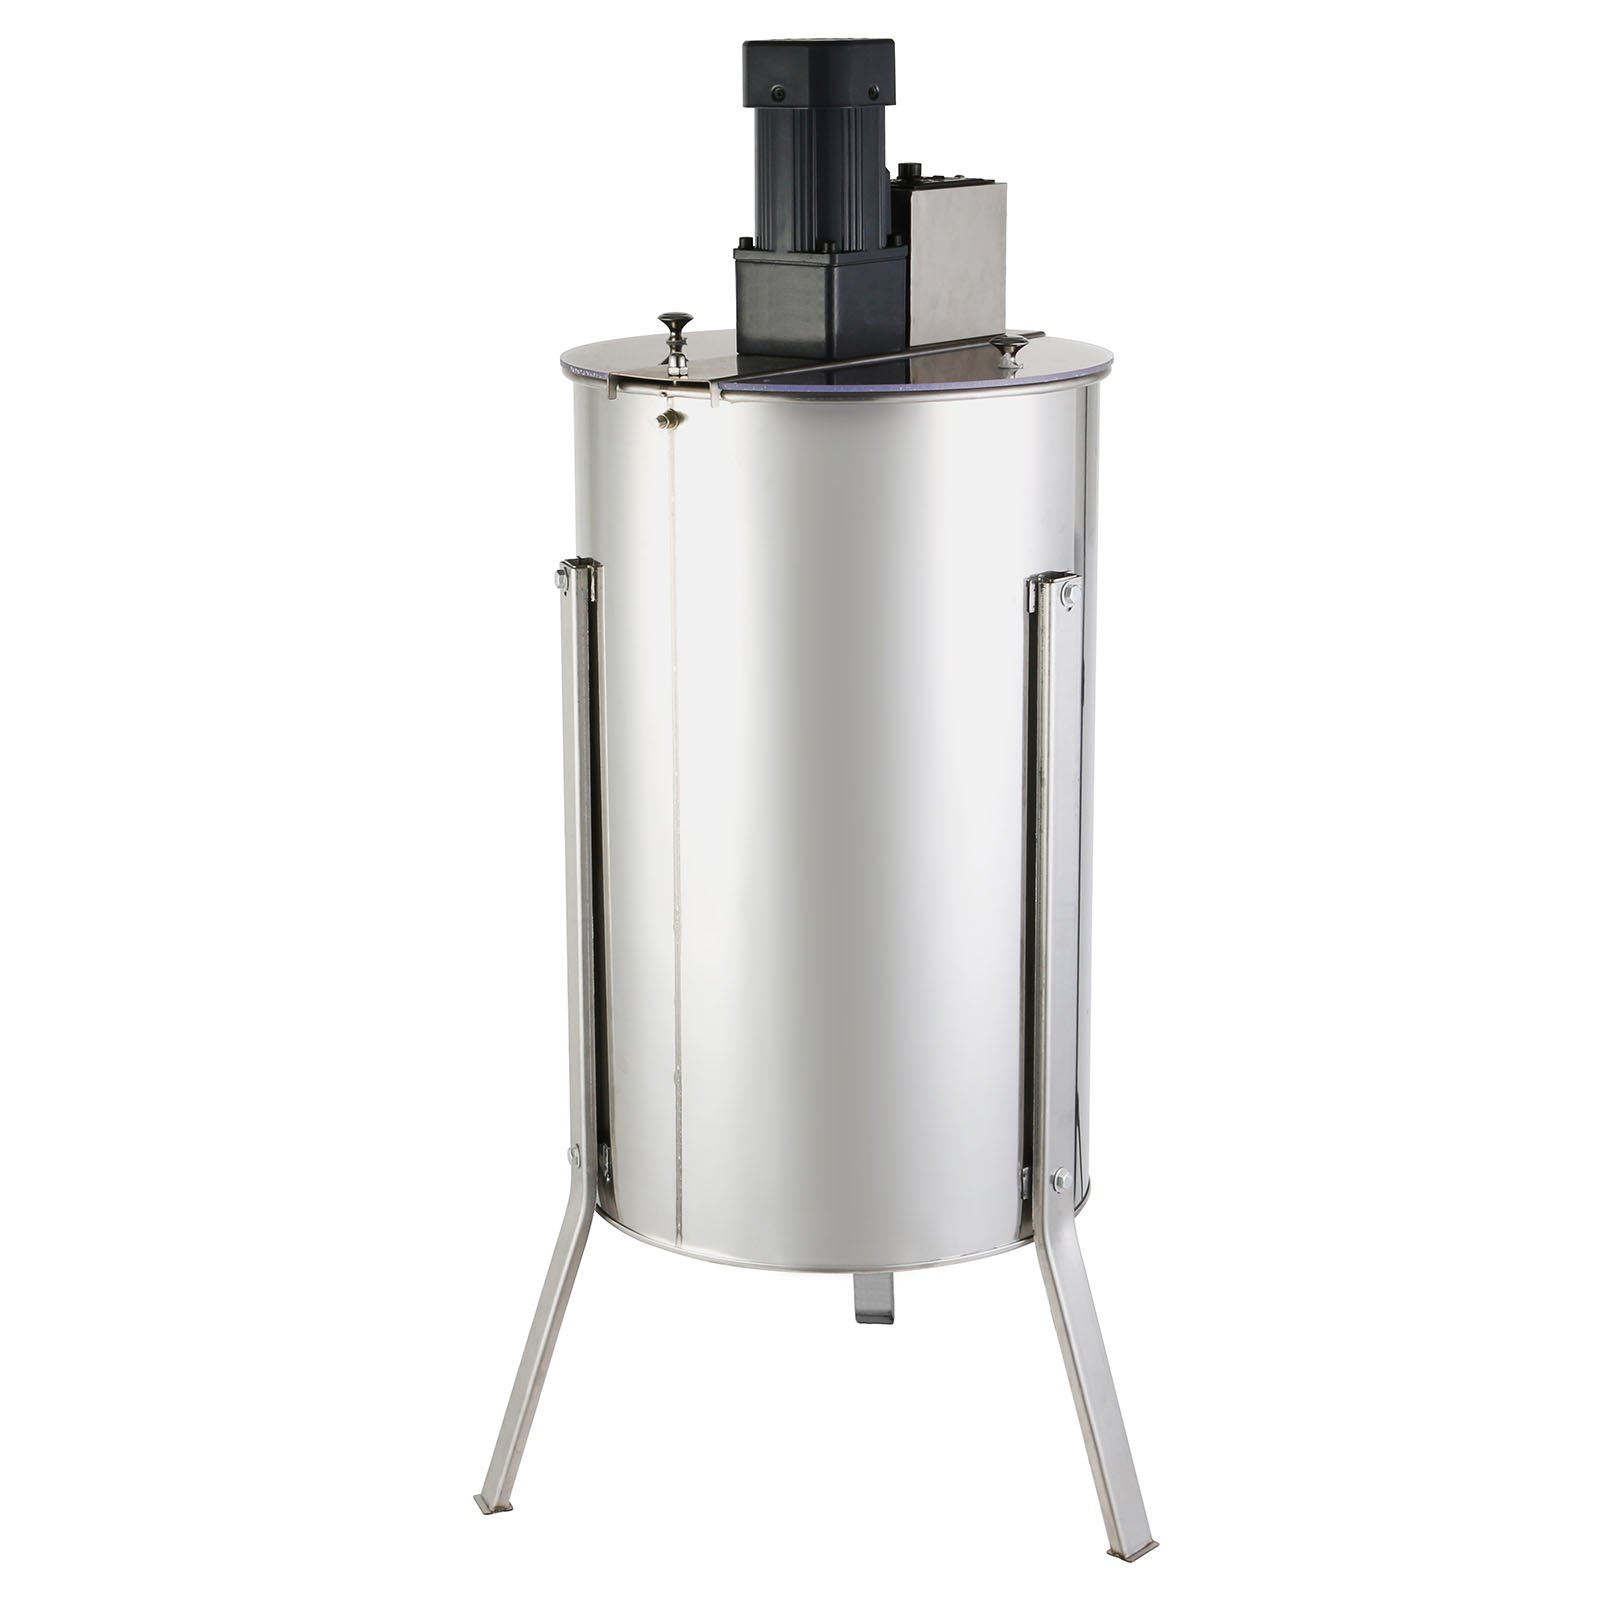 FoodKing Honey Extractor Electric Honey Extractor Honeycomb Spinner 3 Frame Stainless Steel Electric Beekeeping Supply Beehive Processing (3 Frame Electric Honey Extractor)